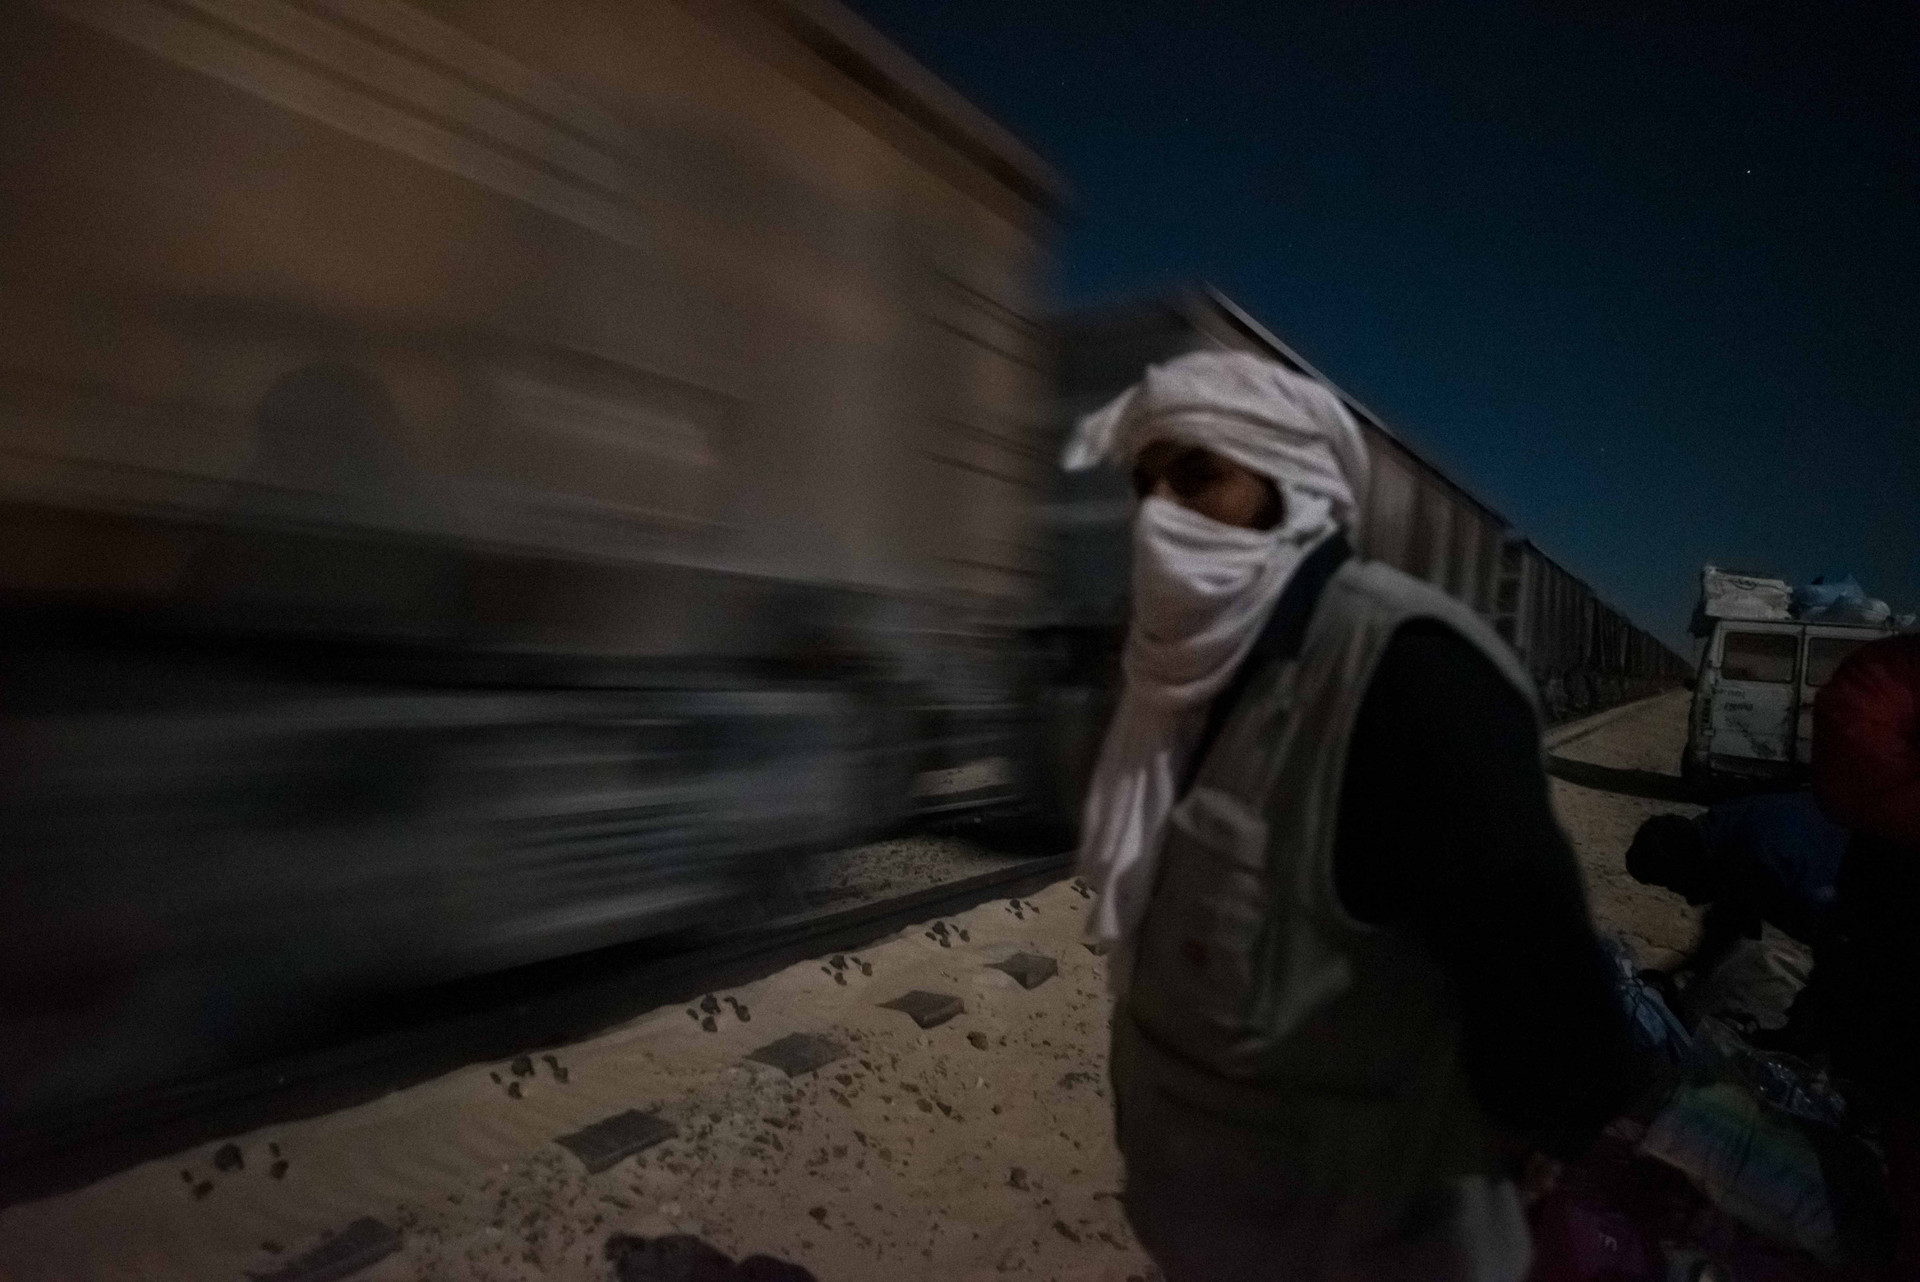 As the train arrives hitchhikers scramble to climb in and throw all the luggage over into one of the empty freight carts - the train takes off without warning. Goods brought along range from giant boxes of fish all the way to entire flocks of goats.